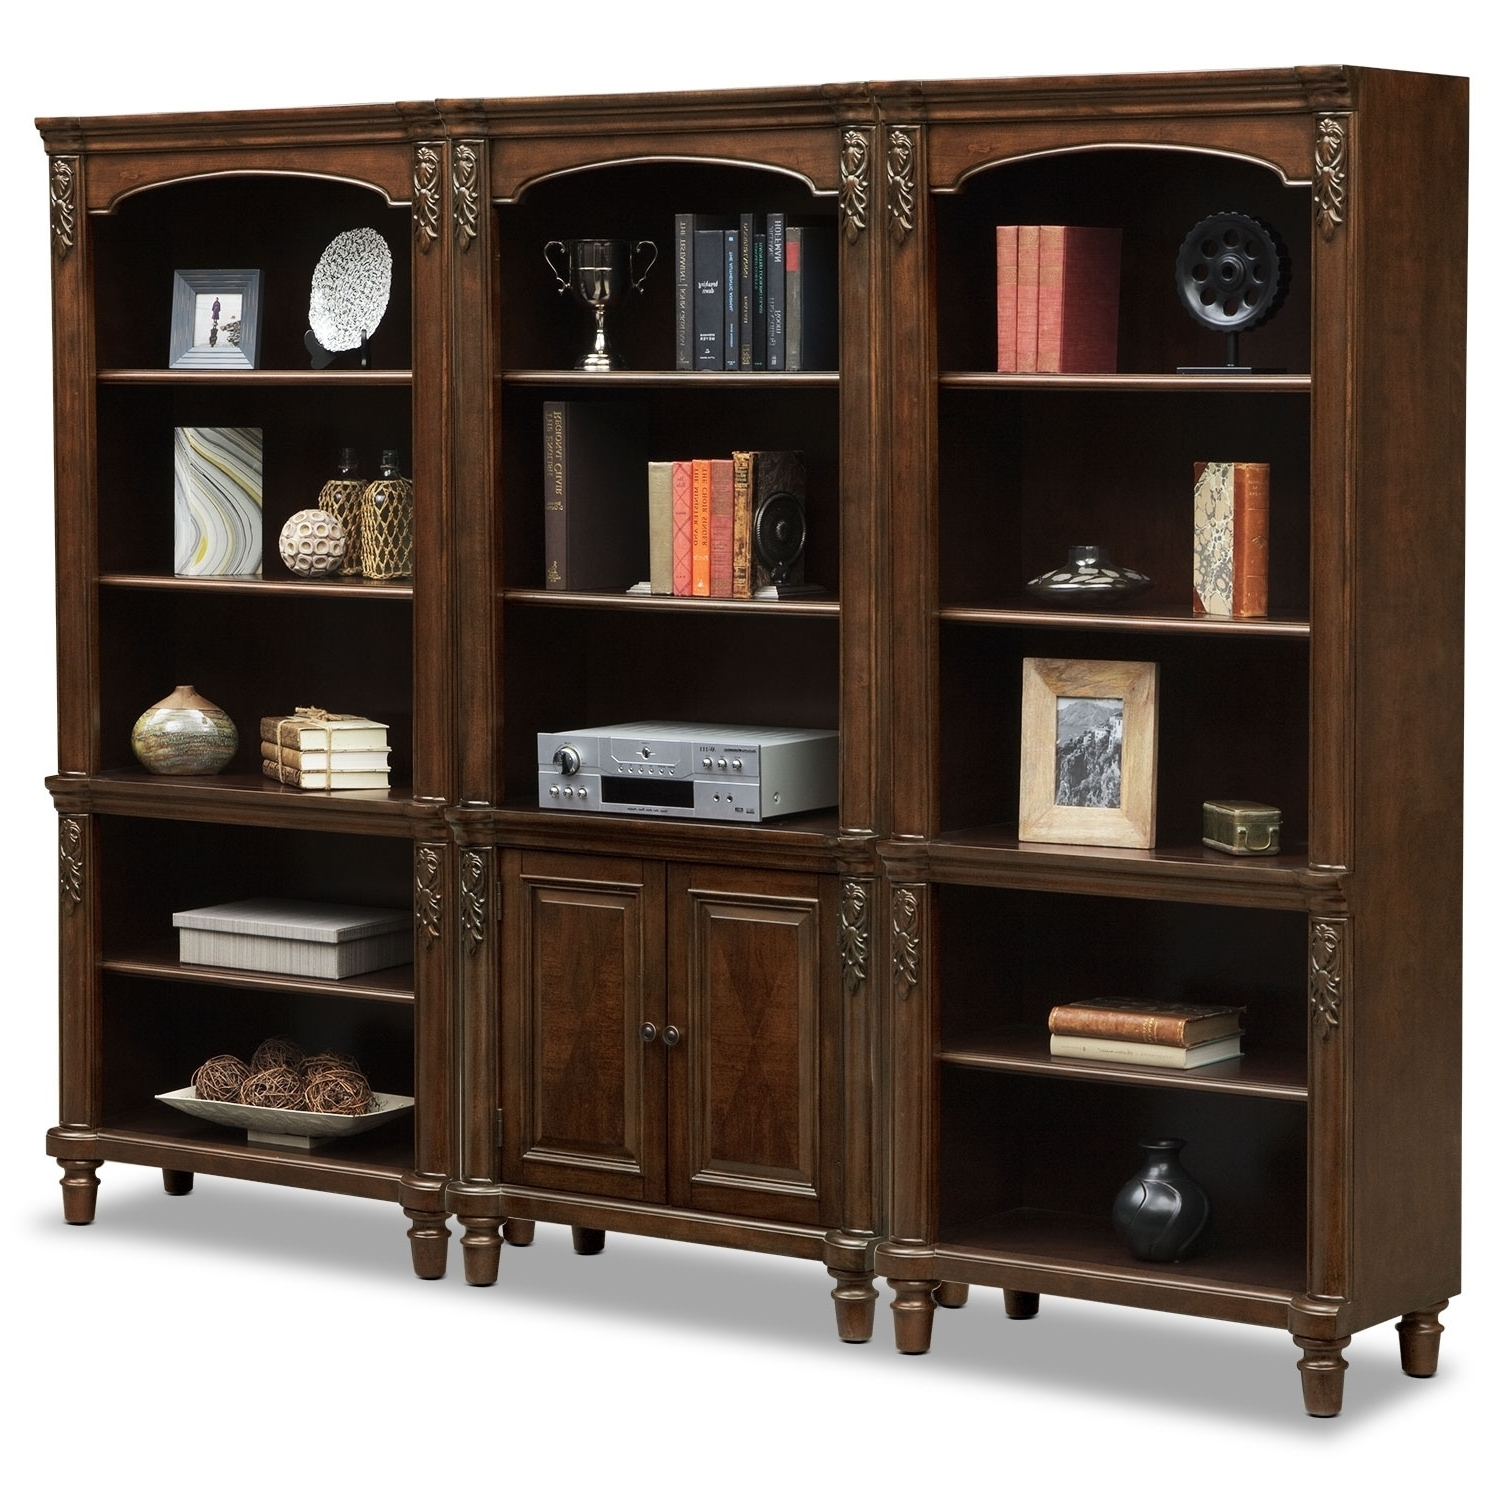 2017 Ashland Wall Bookcase – Cherry (View 1 of 15)